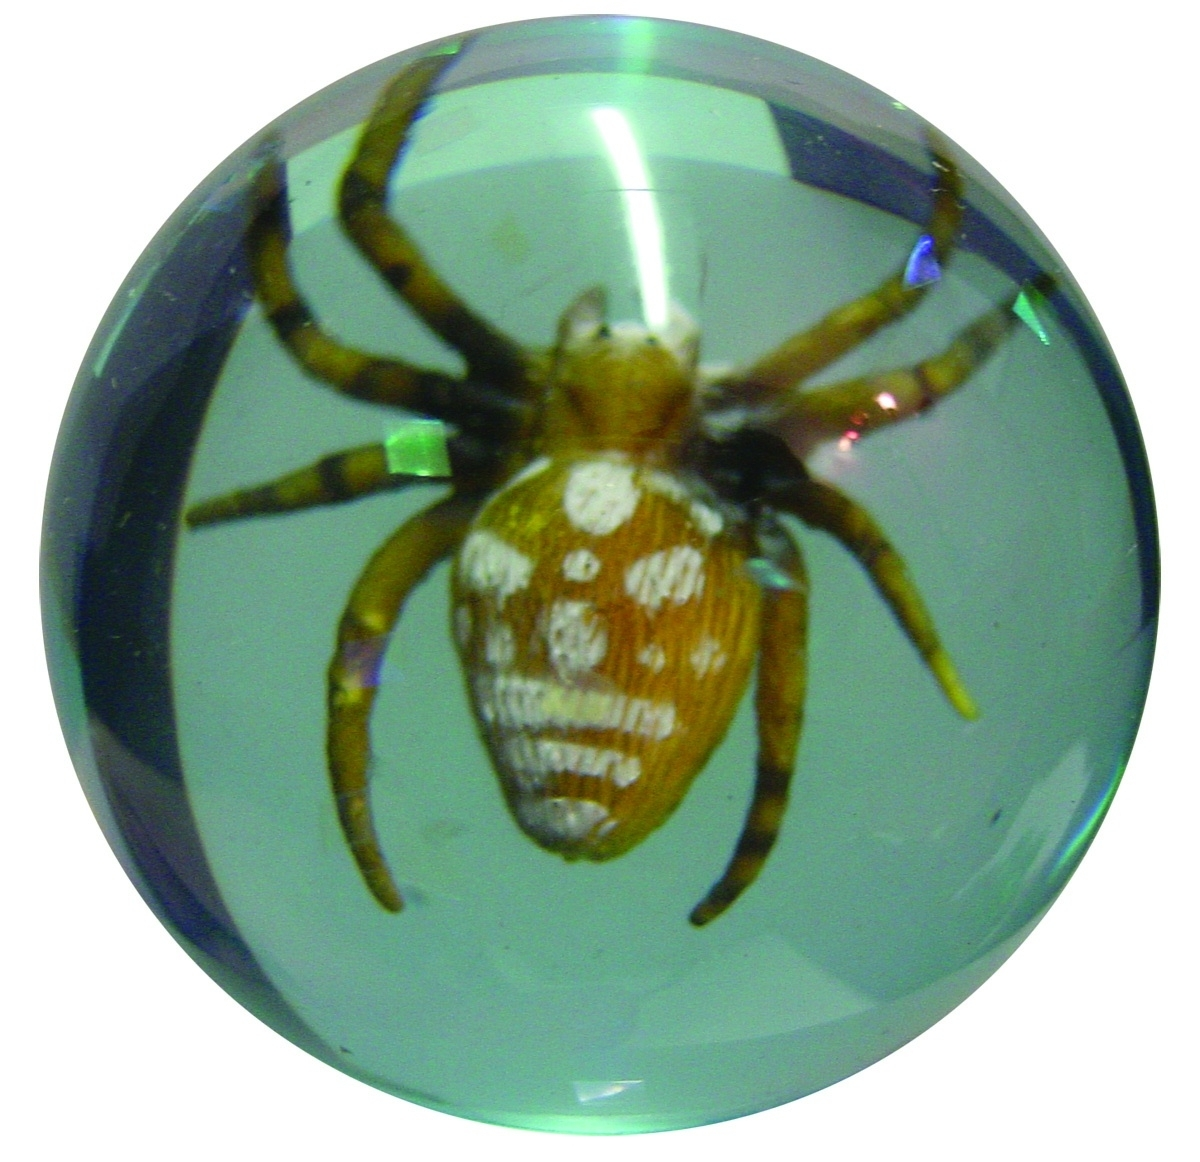 49mm 3-D Spider Super Bouncy Ball (Hedstrom)